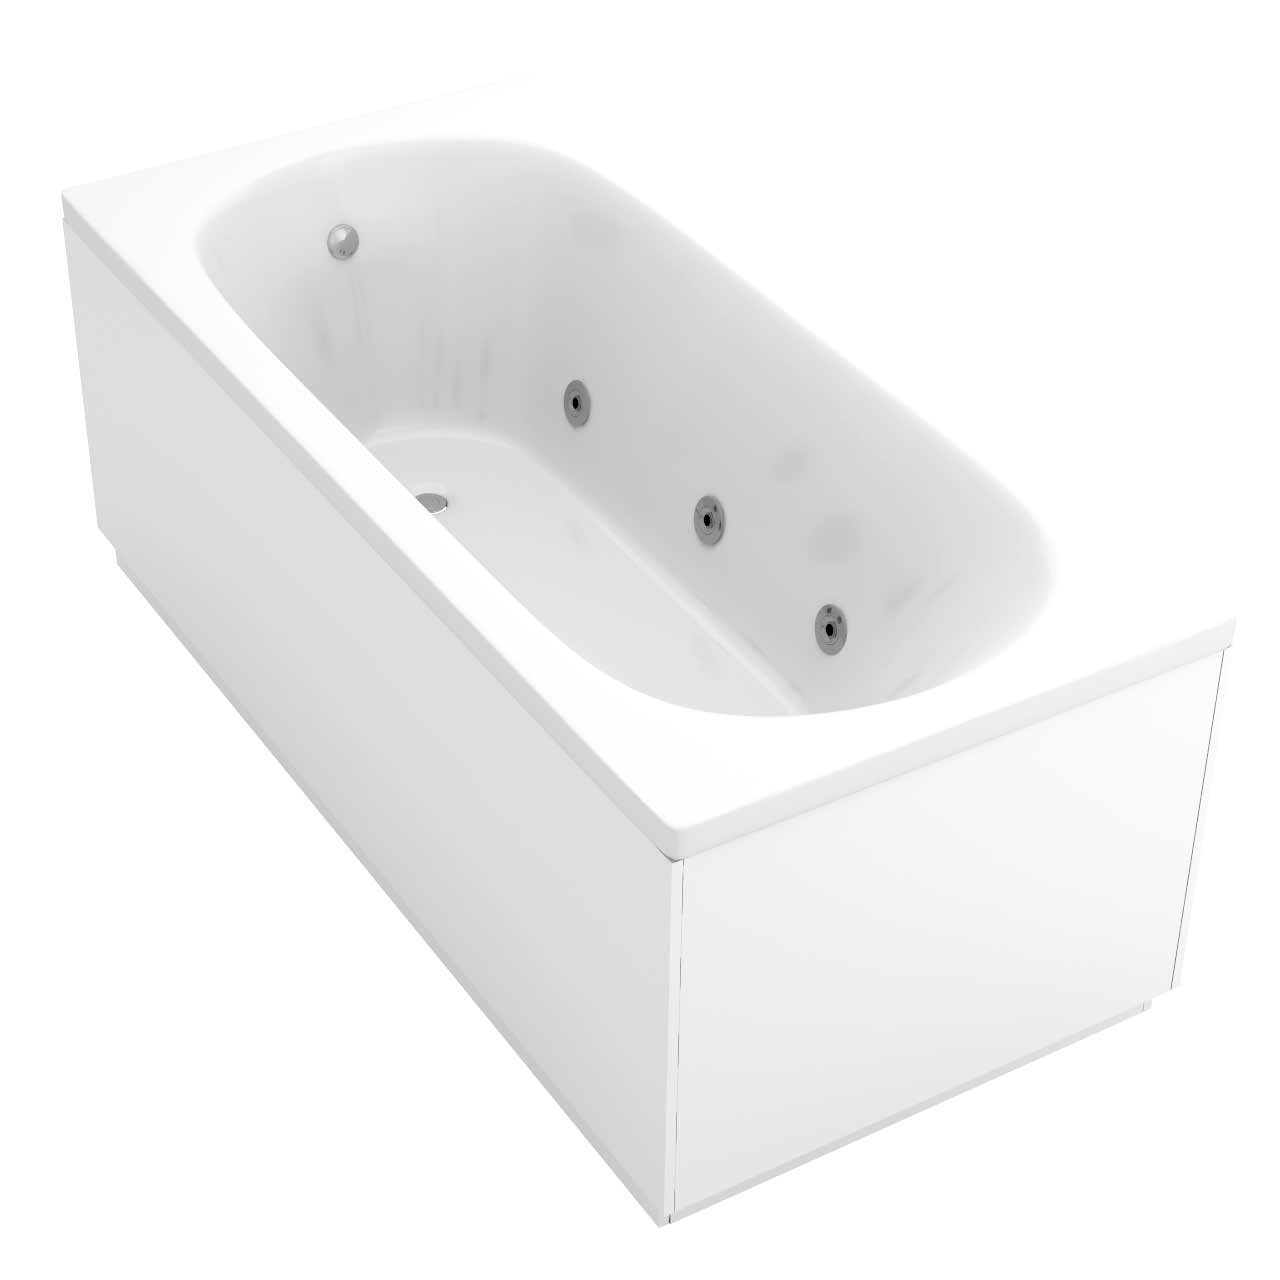 Compact End Tap 6 Jet Chrome Flat Jet Whirlpool Bath 1500x700